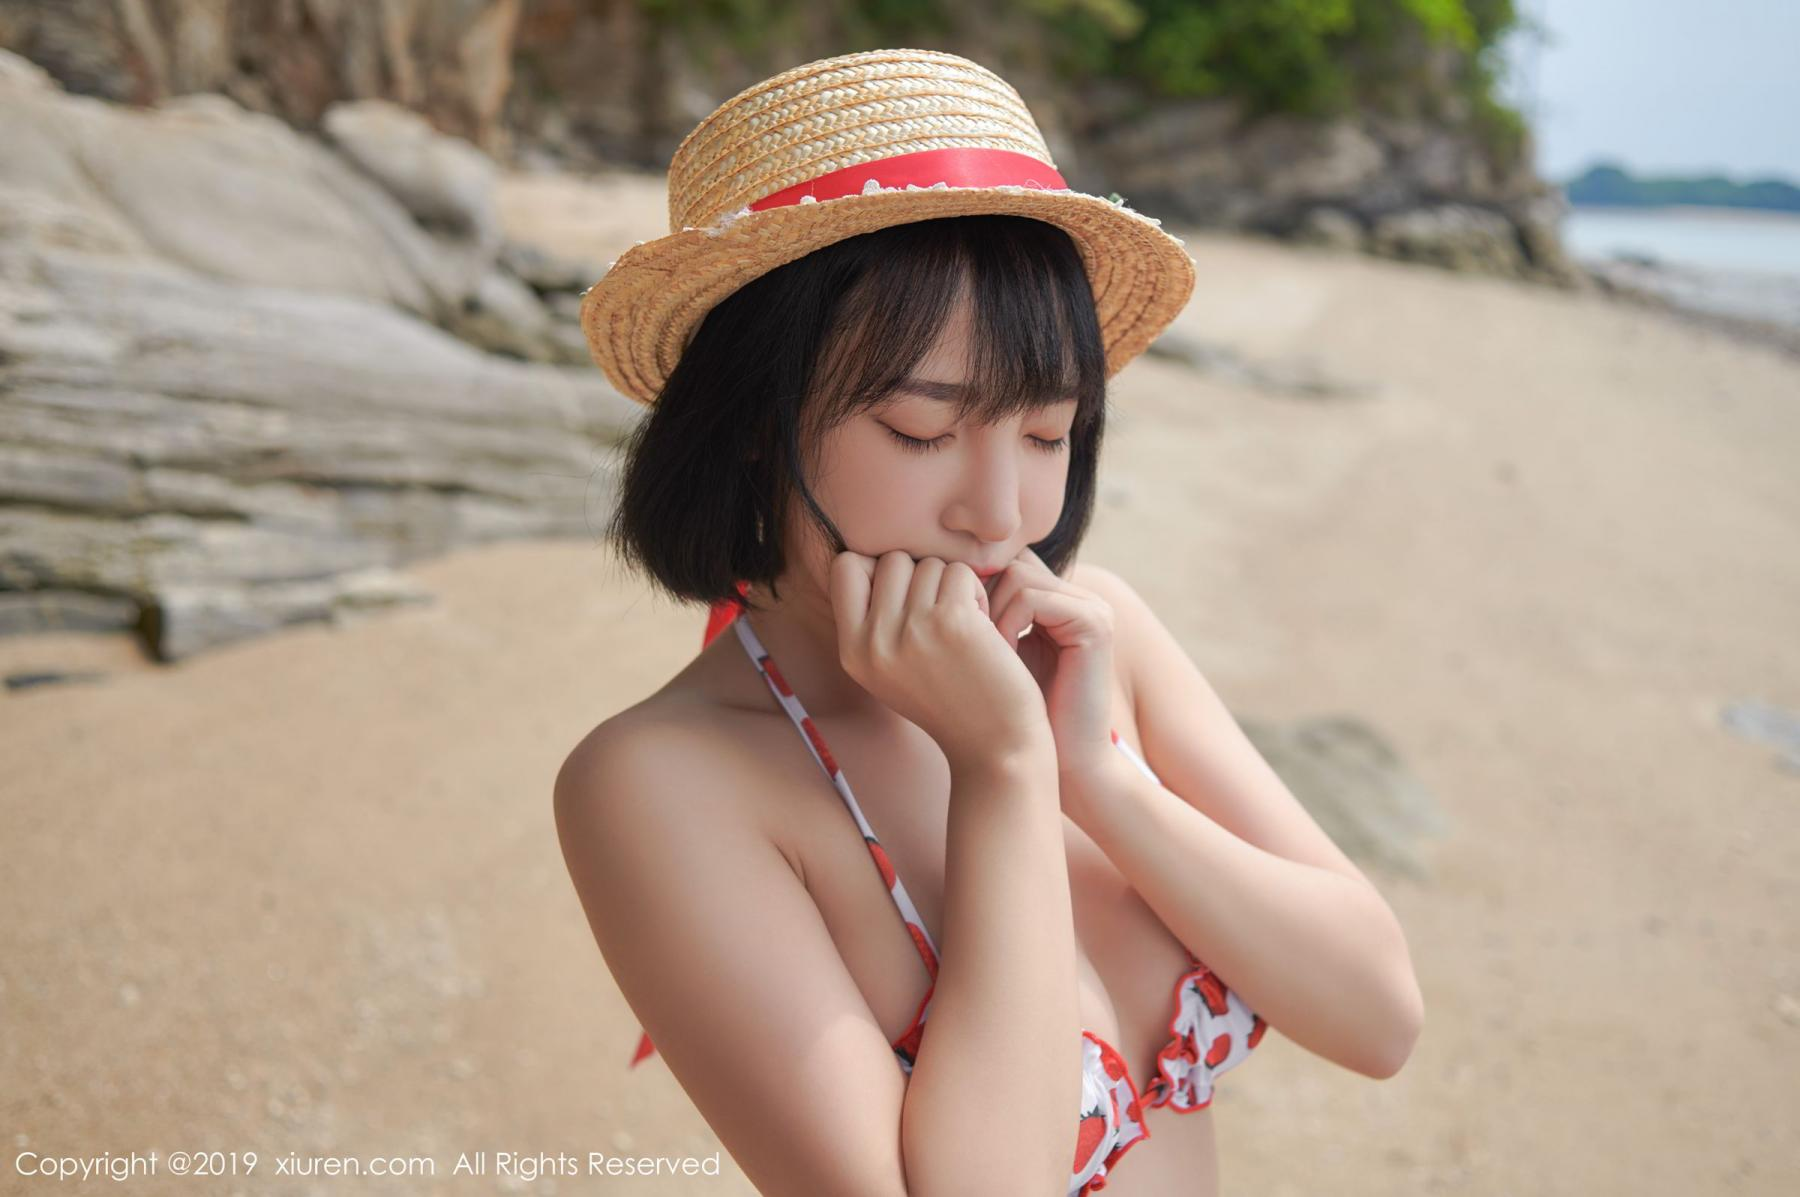 [XiuRen] Vol.1611 Model Qing Qing 6P, Beach, Bikini, Kang In Kyung, Xiuren